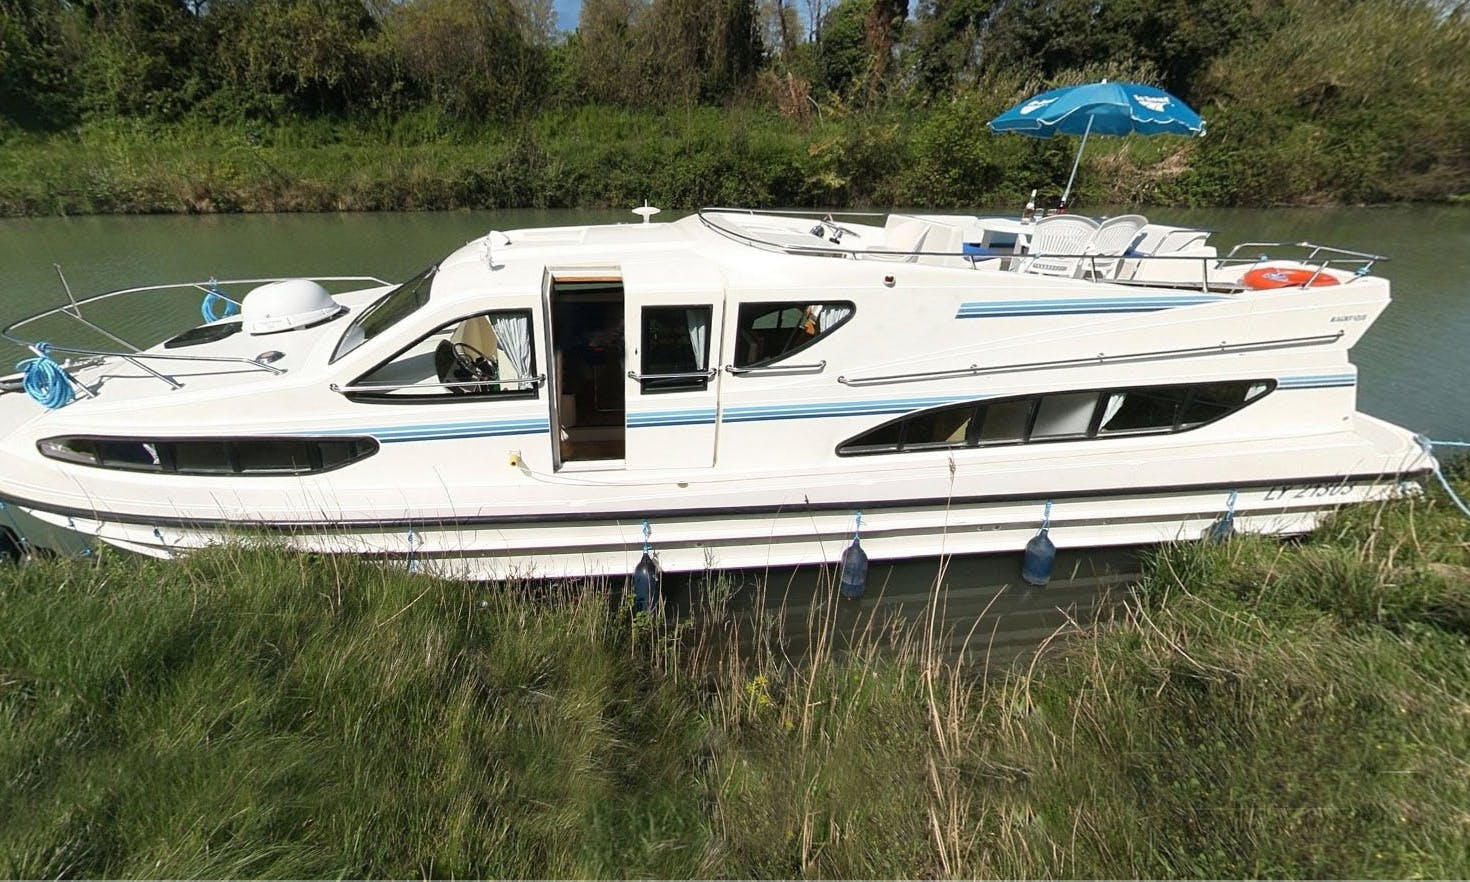 48' Canal Boat for 10 People for Charter in Canal du Midi, France